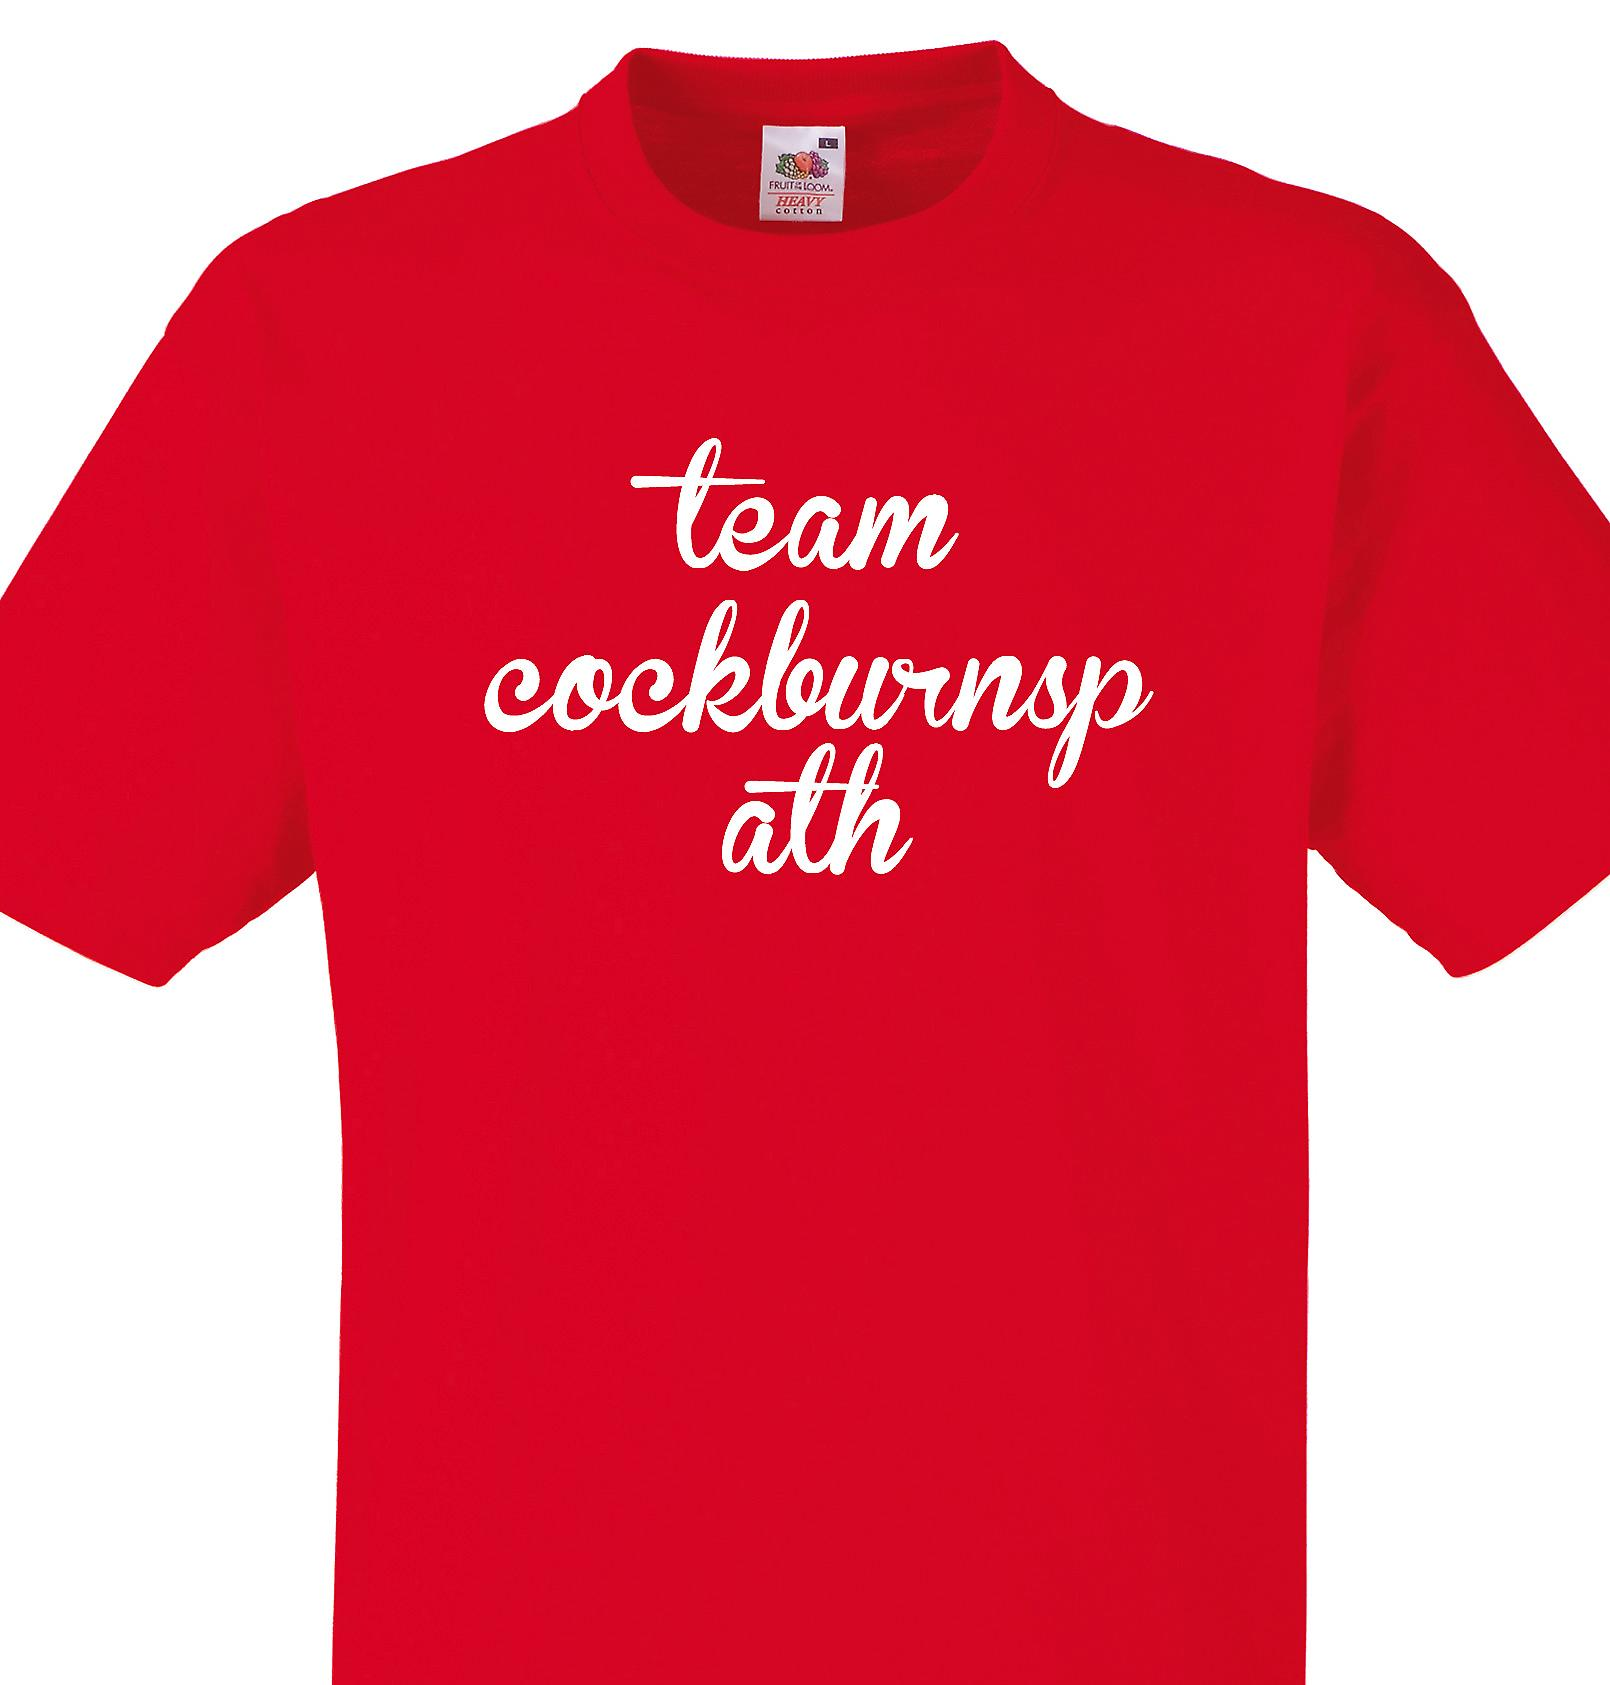 Team Cockburnspath Red T shirt